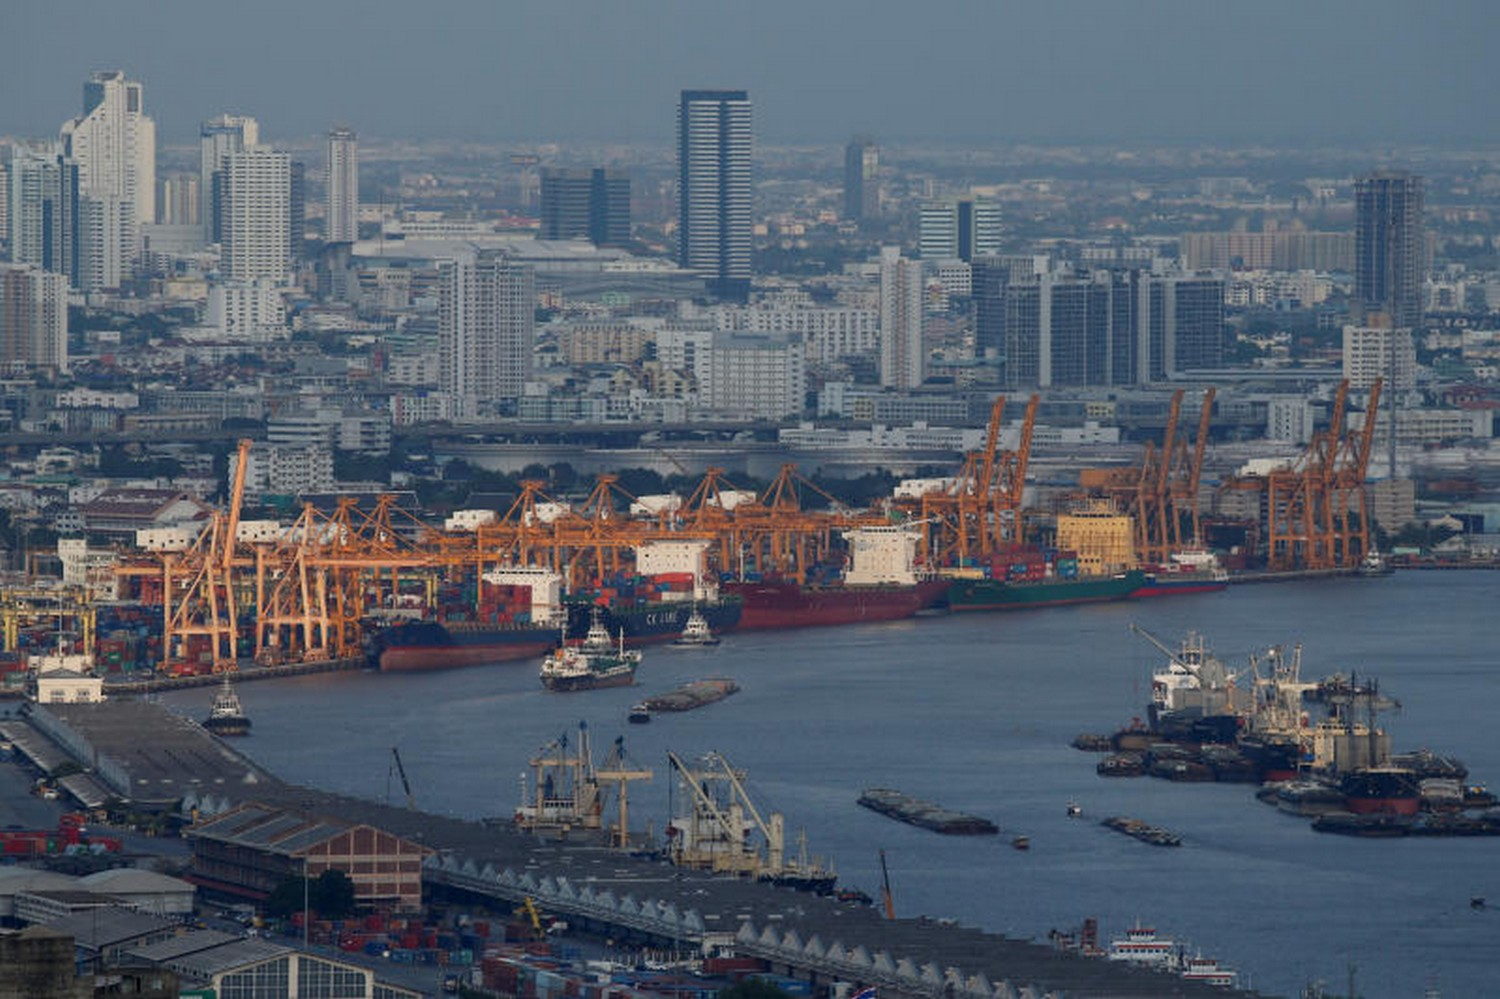 A view of the port of Bangkok. (Photo: Reuters/file)